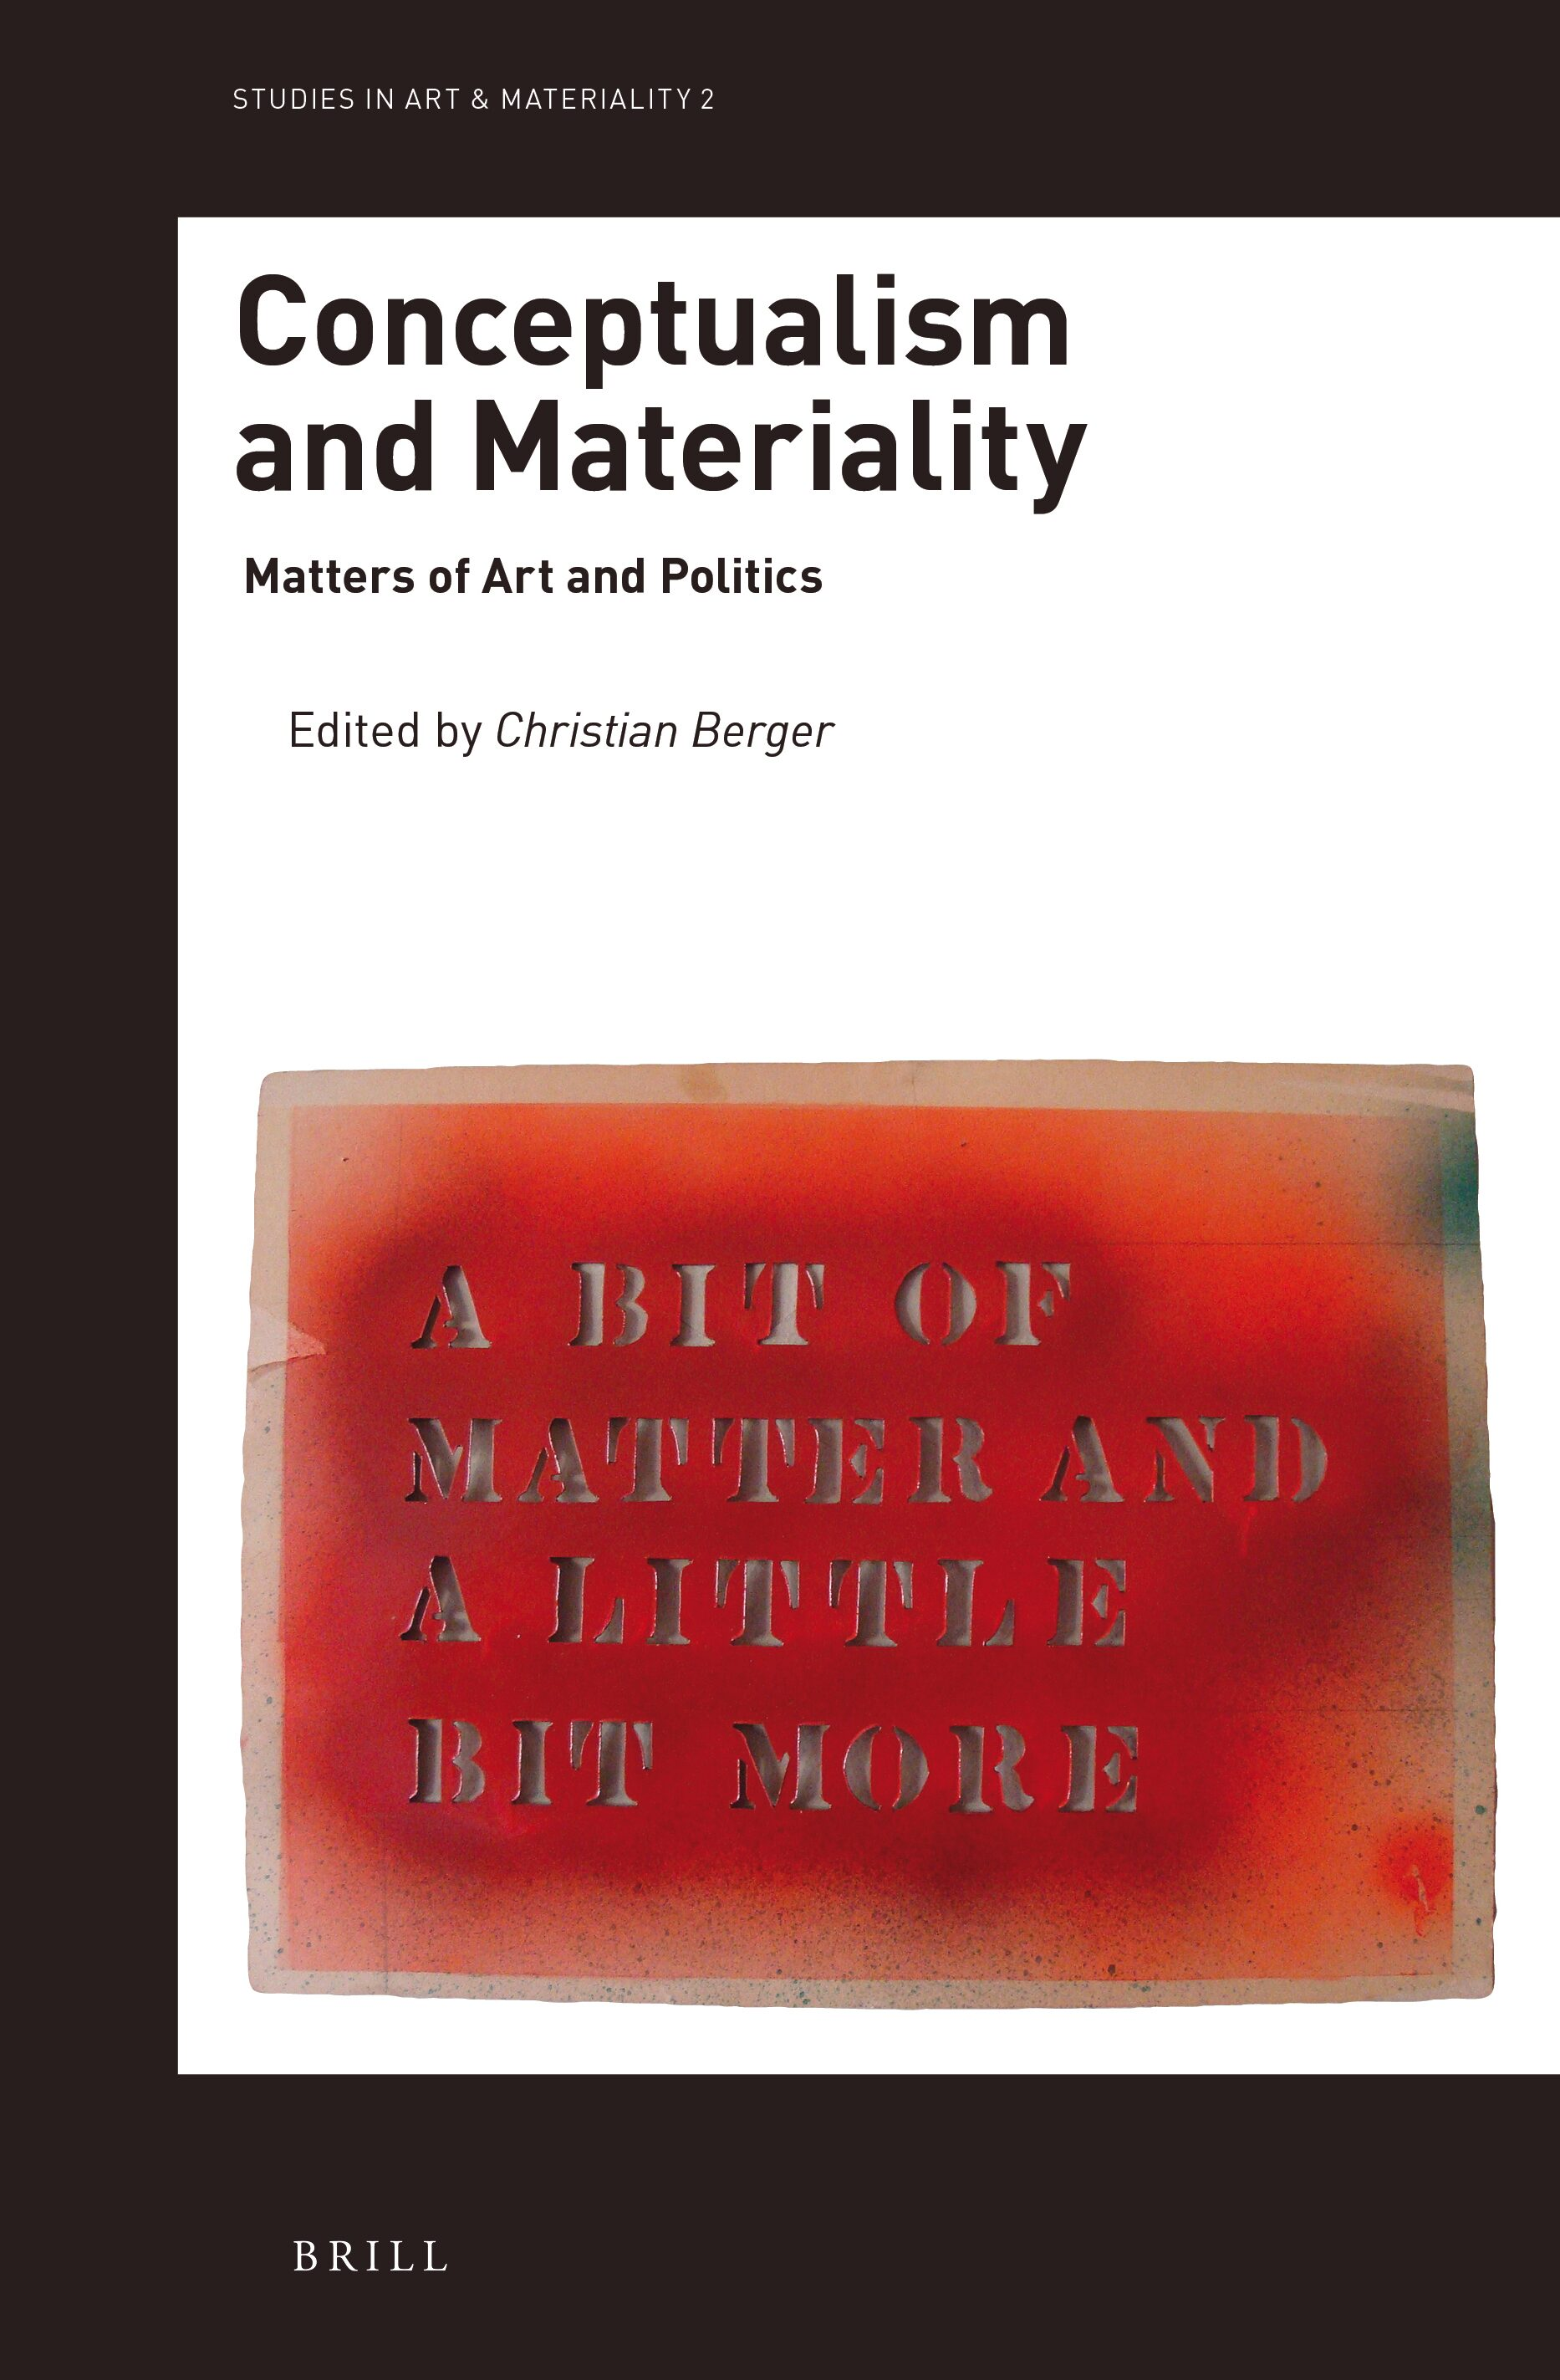 The Matter Of Circulation In Conceptualism And Materiality